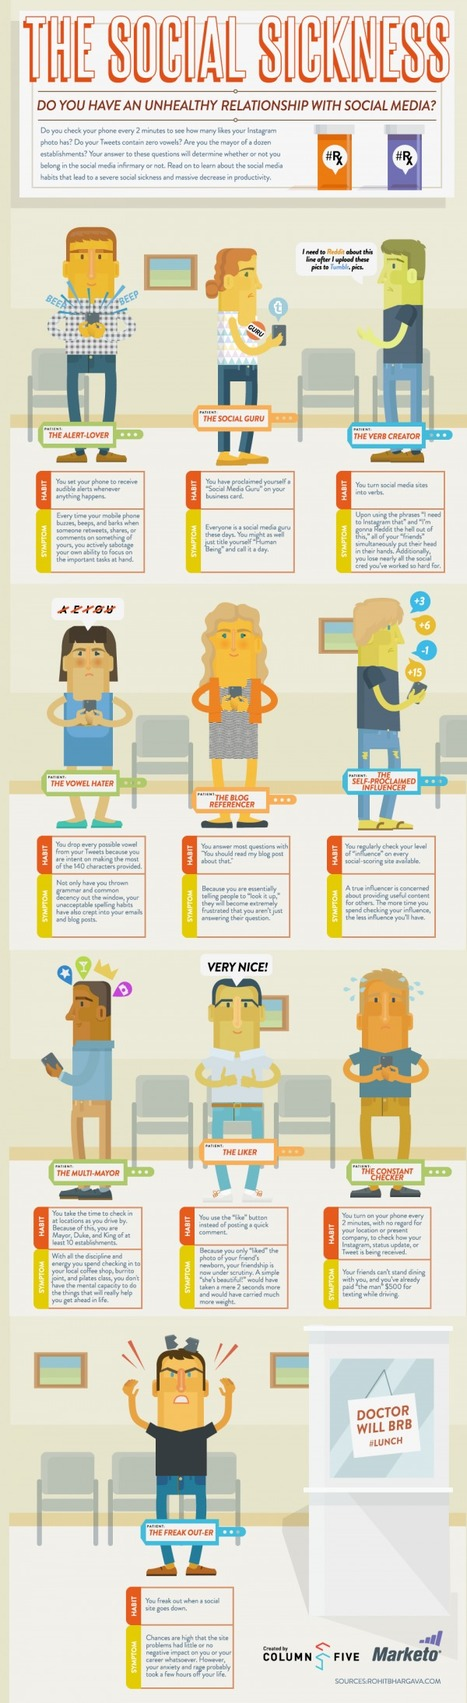 The Social Sickness - INFOGRAPHIC | Enhanced Learning | Scoop.it